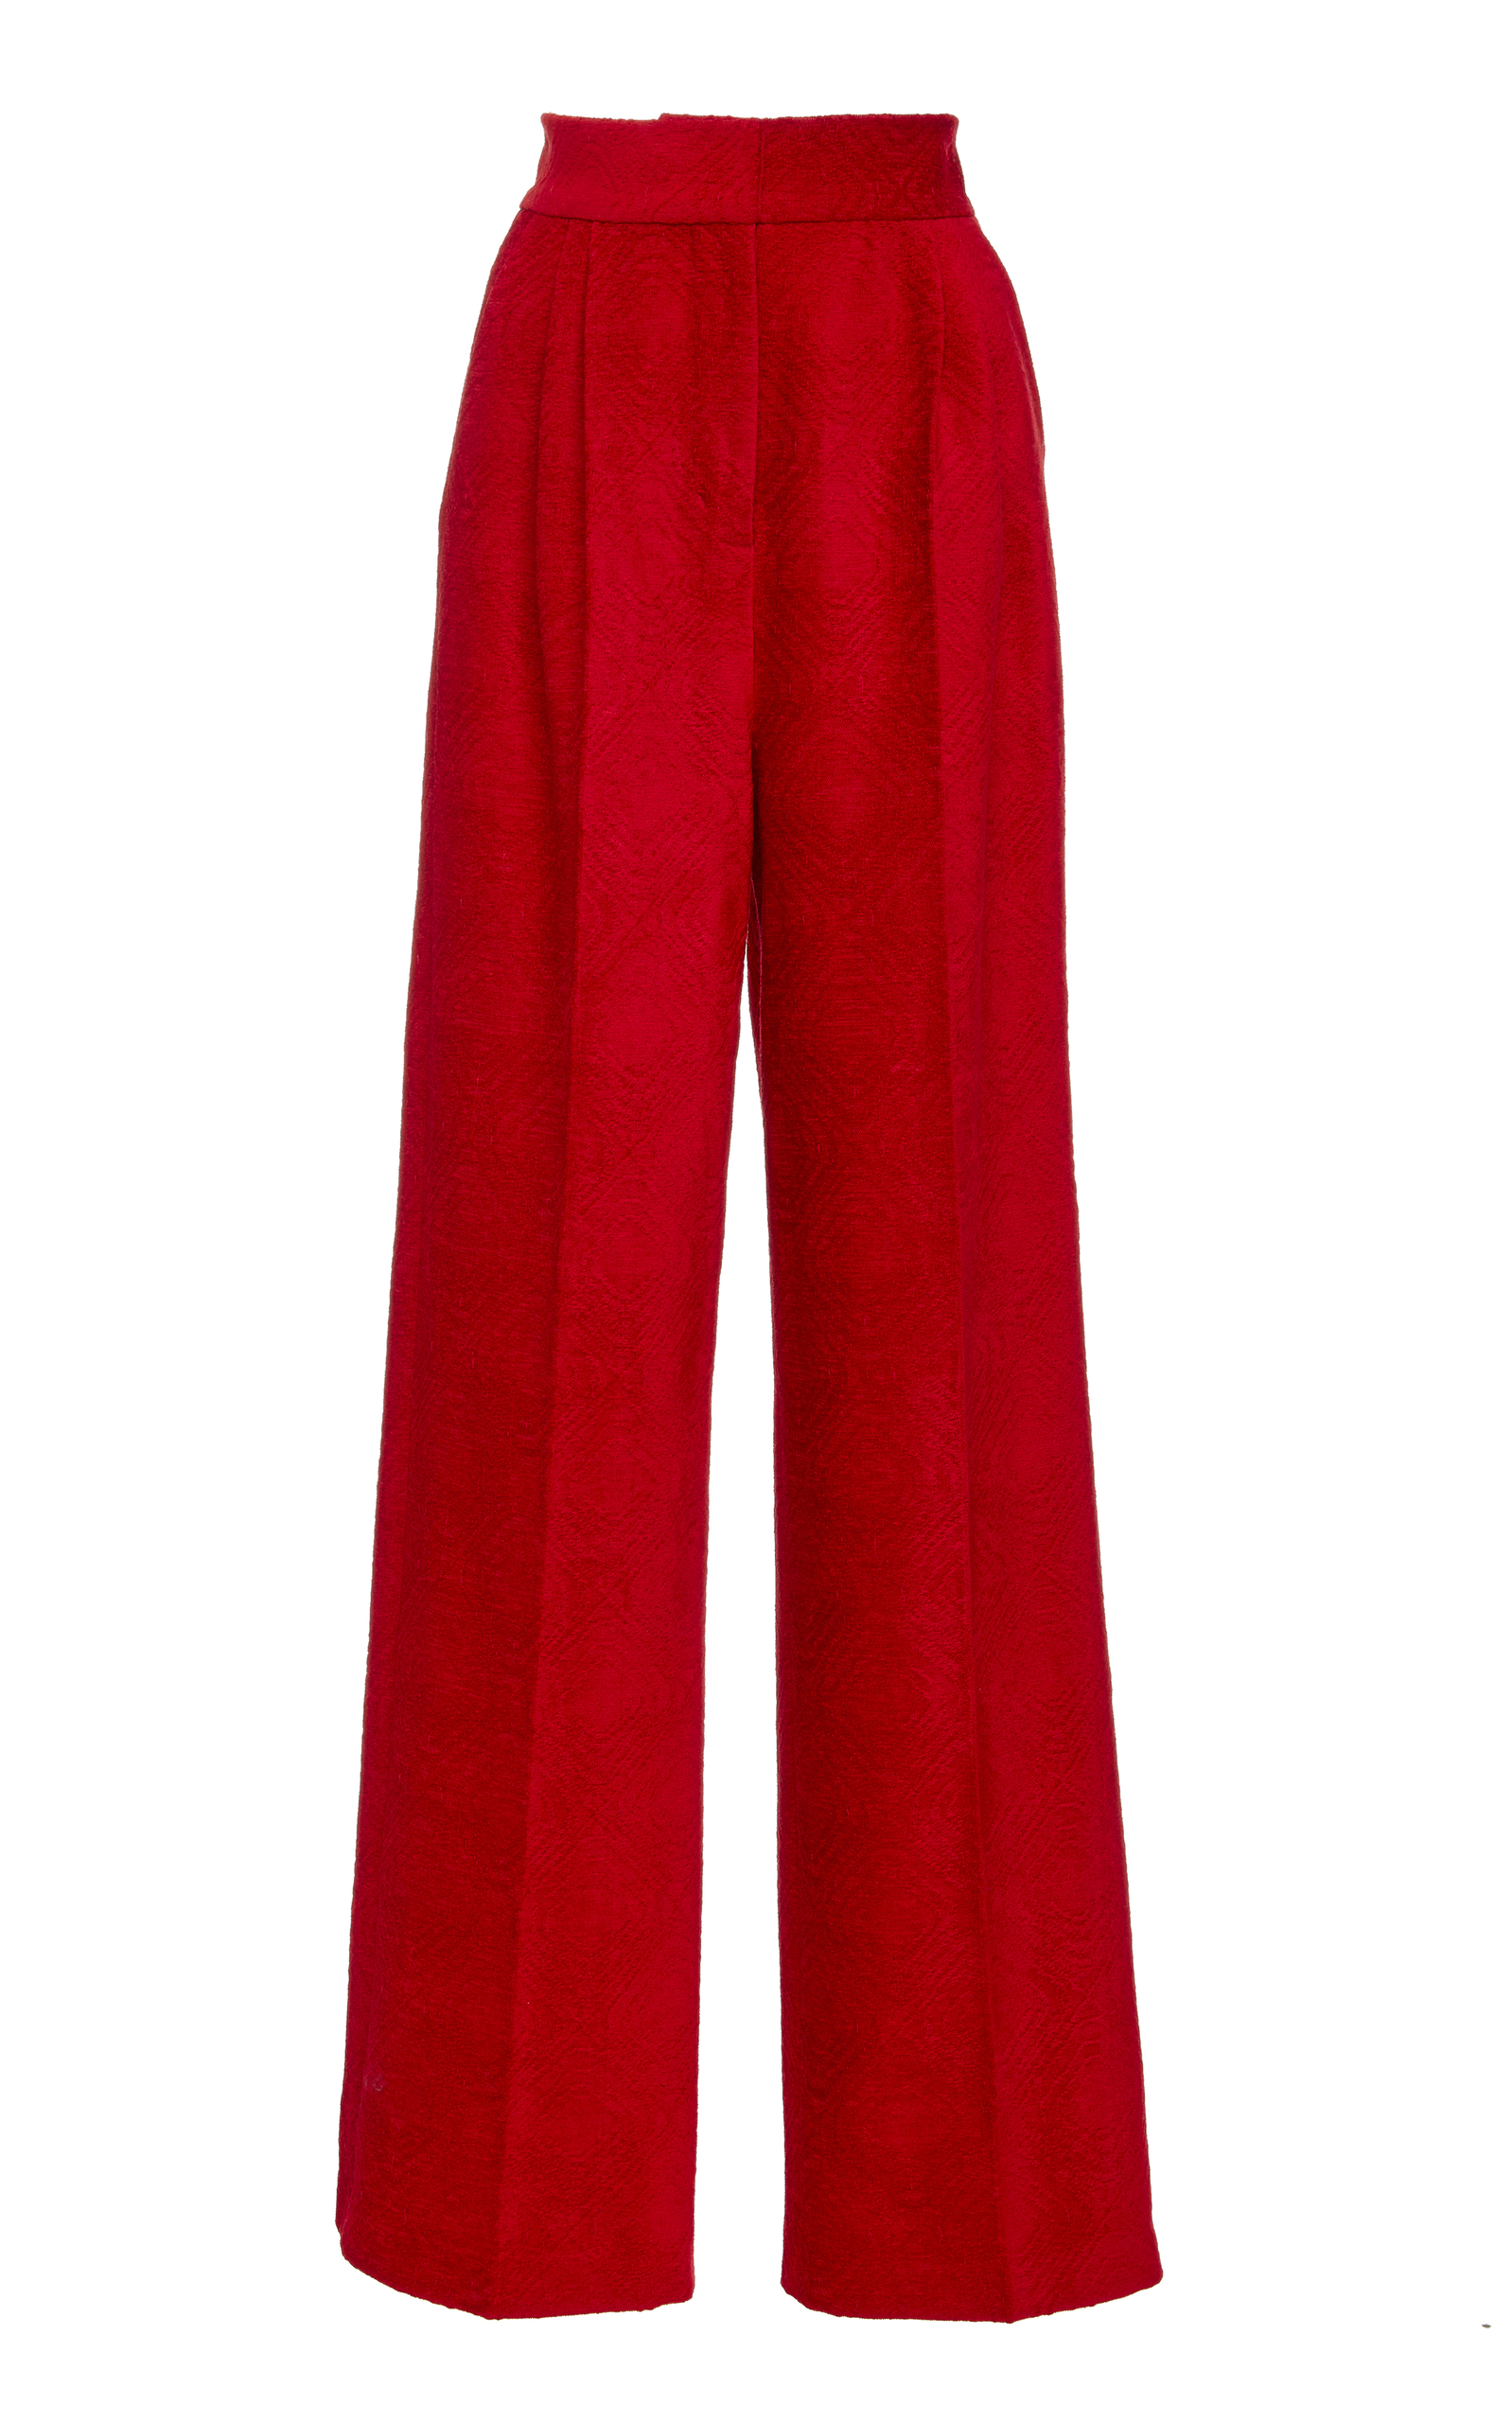 ALENA AKHMADULLINA High Waisted Trousers in Red